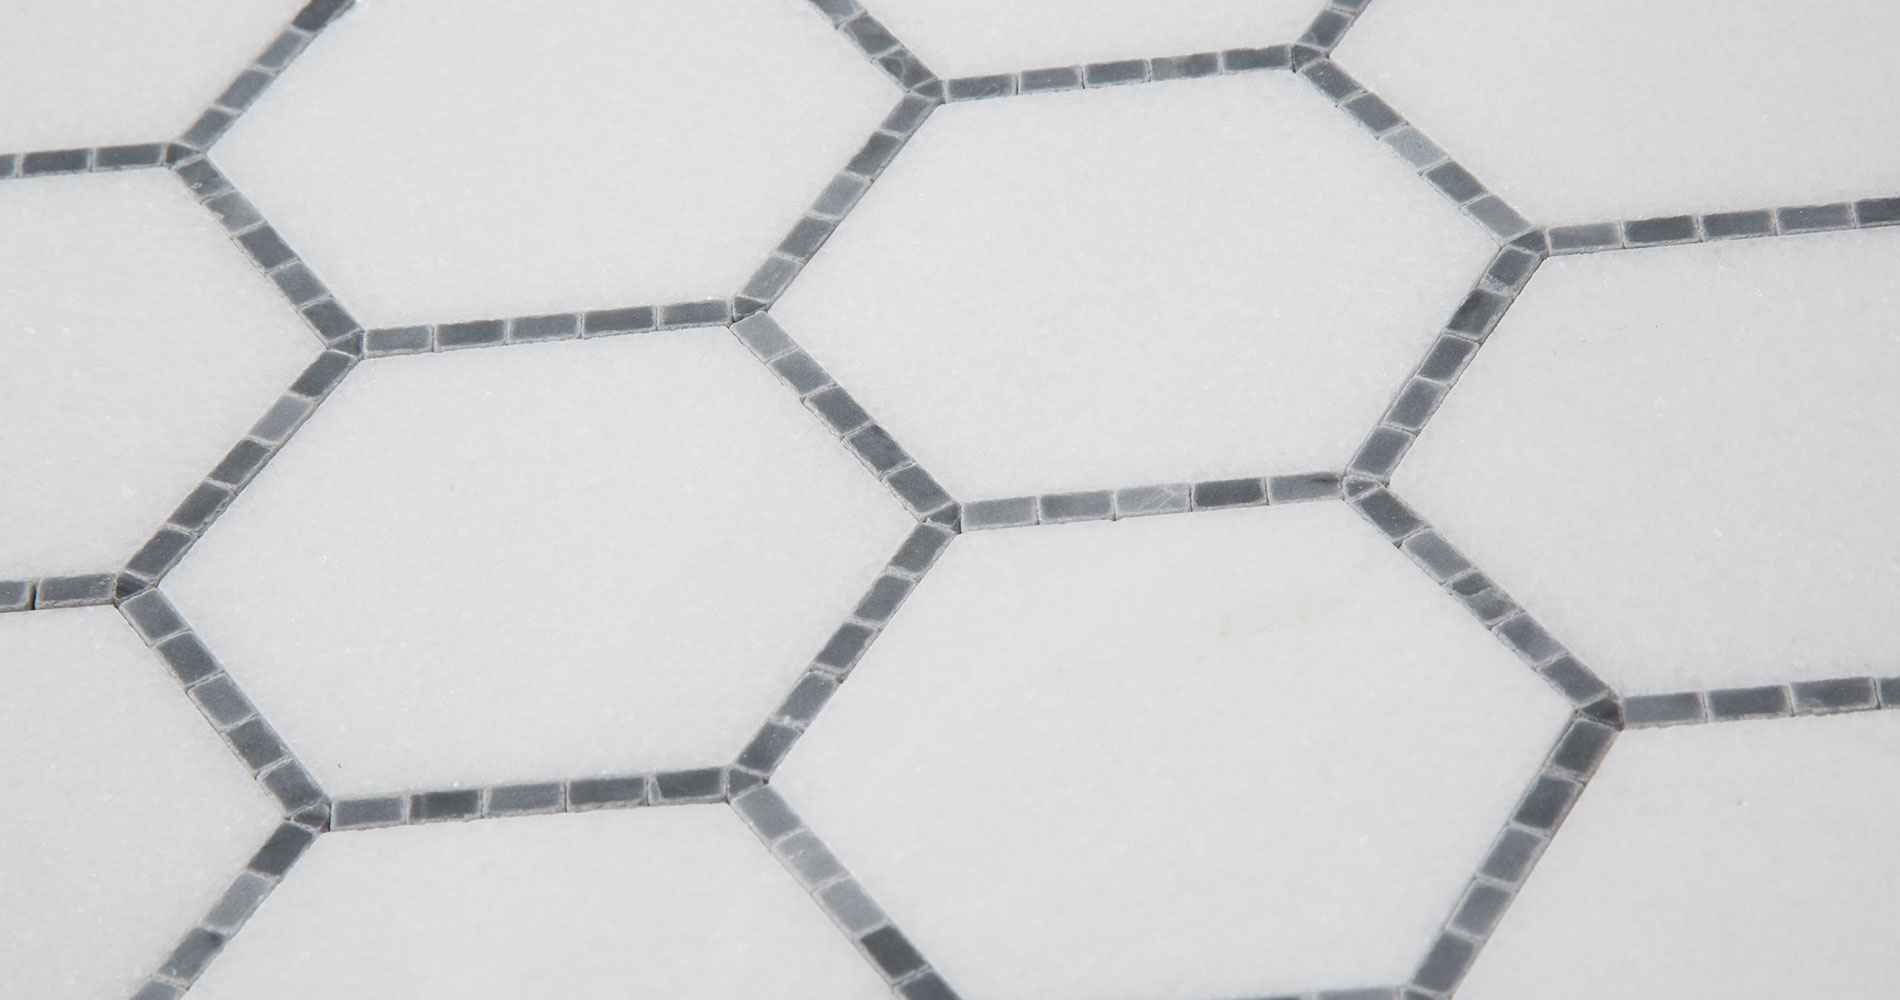 centurymosaic-3-inch-Hexagon-Marble-Mosaic-Tile-Collection-12